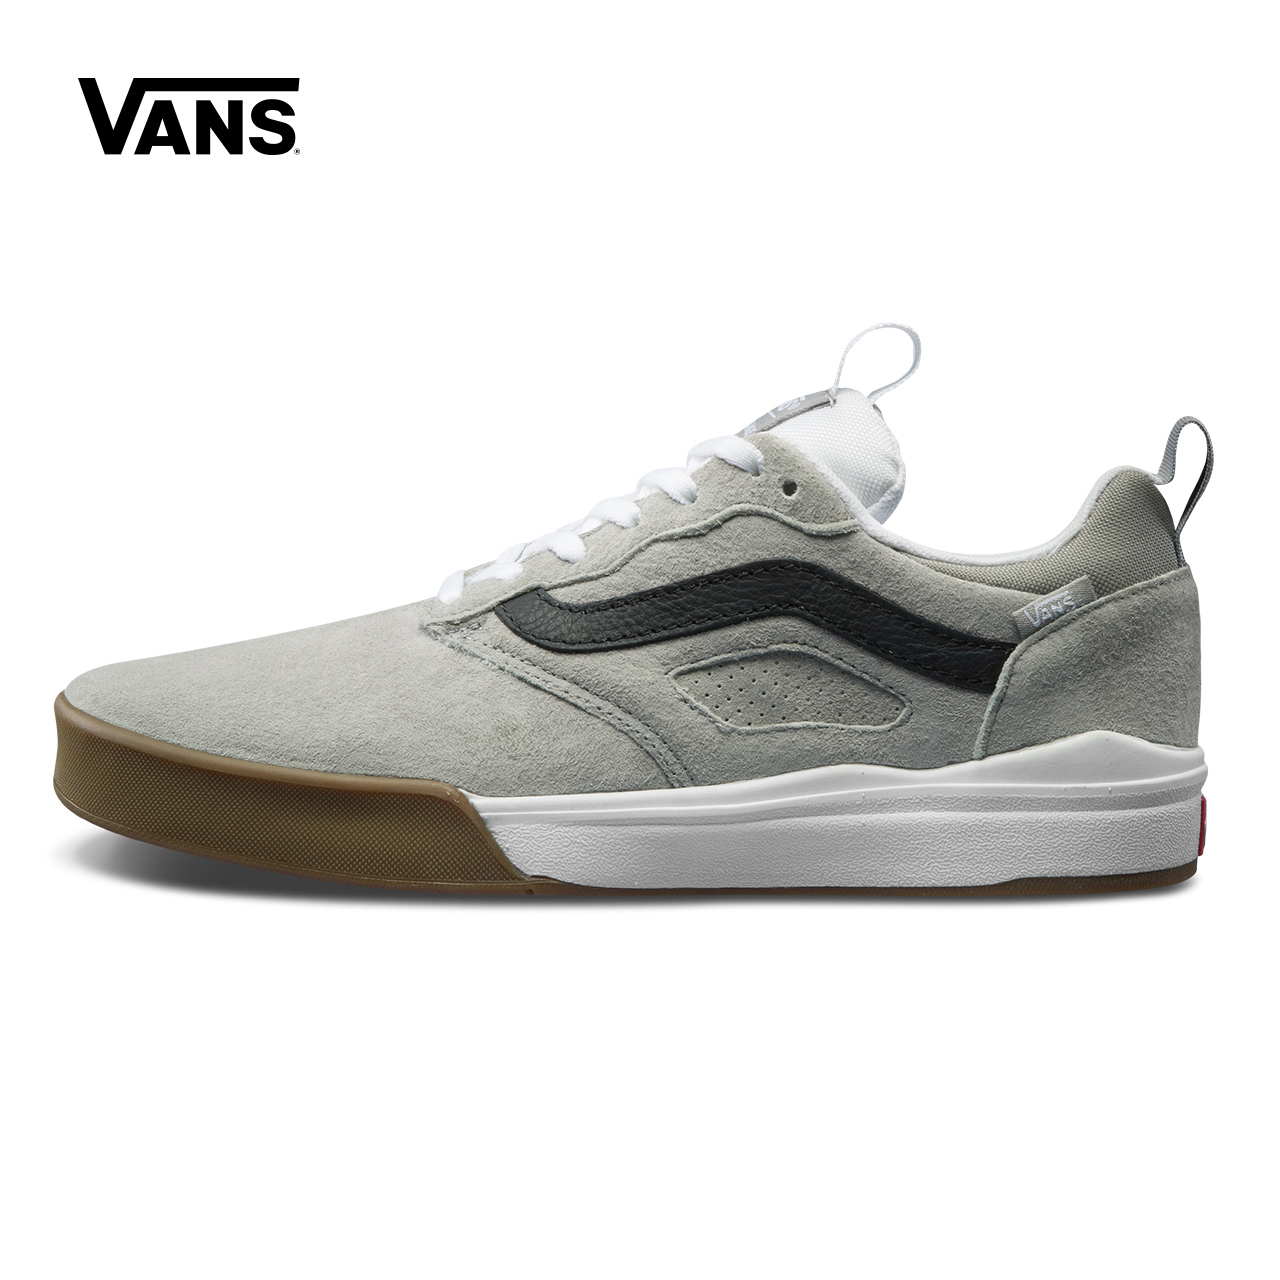 587900edc4c Original New Arrival Vans Men s Ultrarange Pro Low top Skateboarding Shoes  Sneakers Sport Outdoor Canvas VN0A3DOSLUY QNP-in Skateboarding from Sports  ...